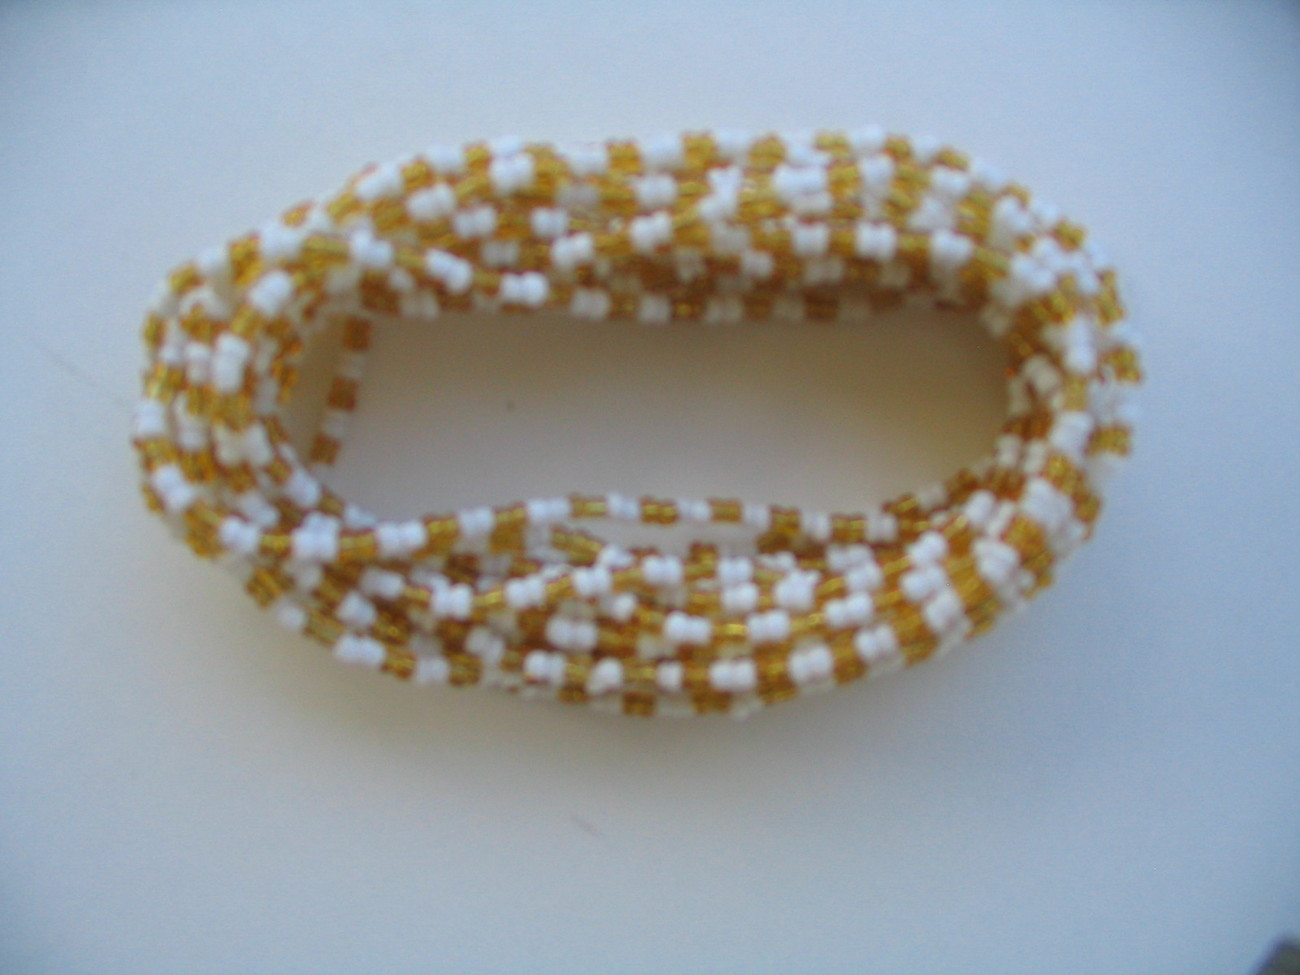 African Jewelry Maasai Masai 3 Strands Yellow and White Bead Necklace Handmade